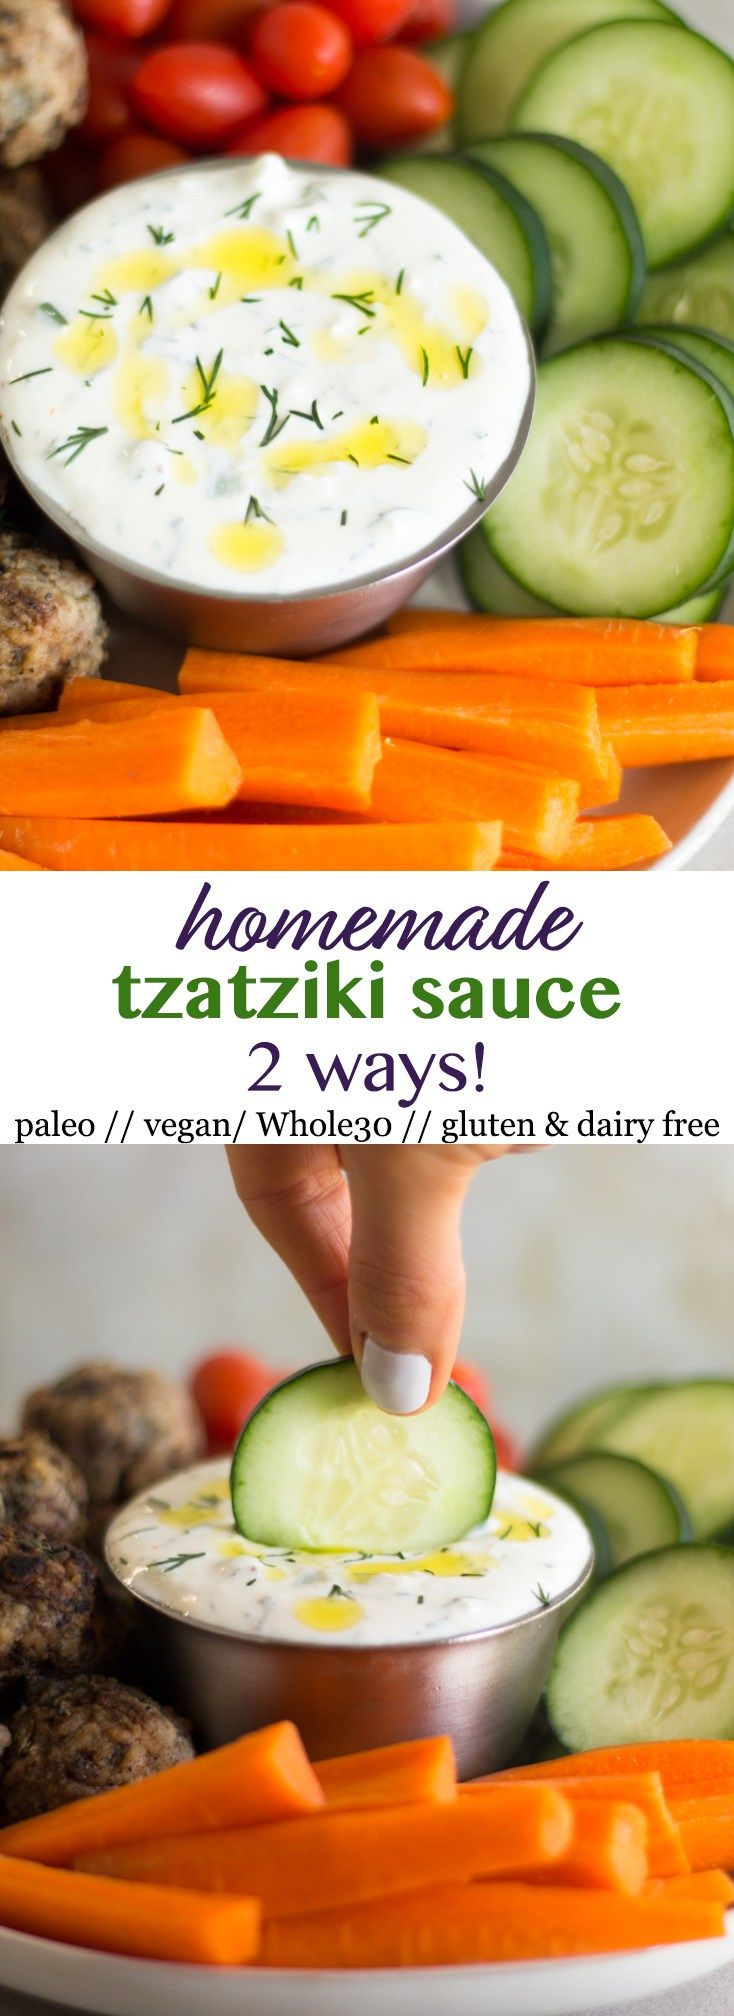 How to Make Tzatziki Sauce 2 Ways! This healthy and easytzatziki sauce will become a staple in your house. Only 8 ingredients and it can be made using Greek yogurt or dairy free so it\'s paleo, vegan, gluten free, and Whole30 approved. Great for meal prep too! - Eat the Gains #dairyfree #glutenfree #paleo #whole30 #vegan